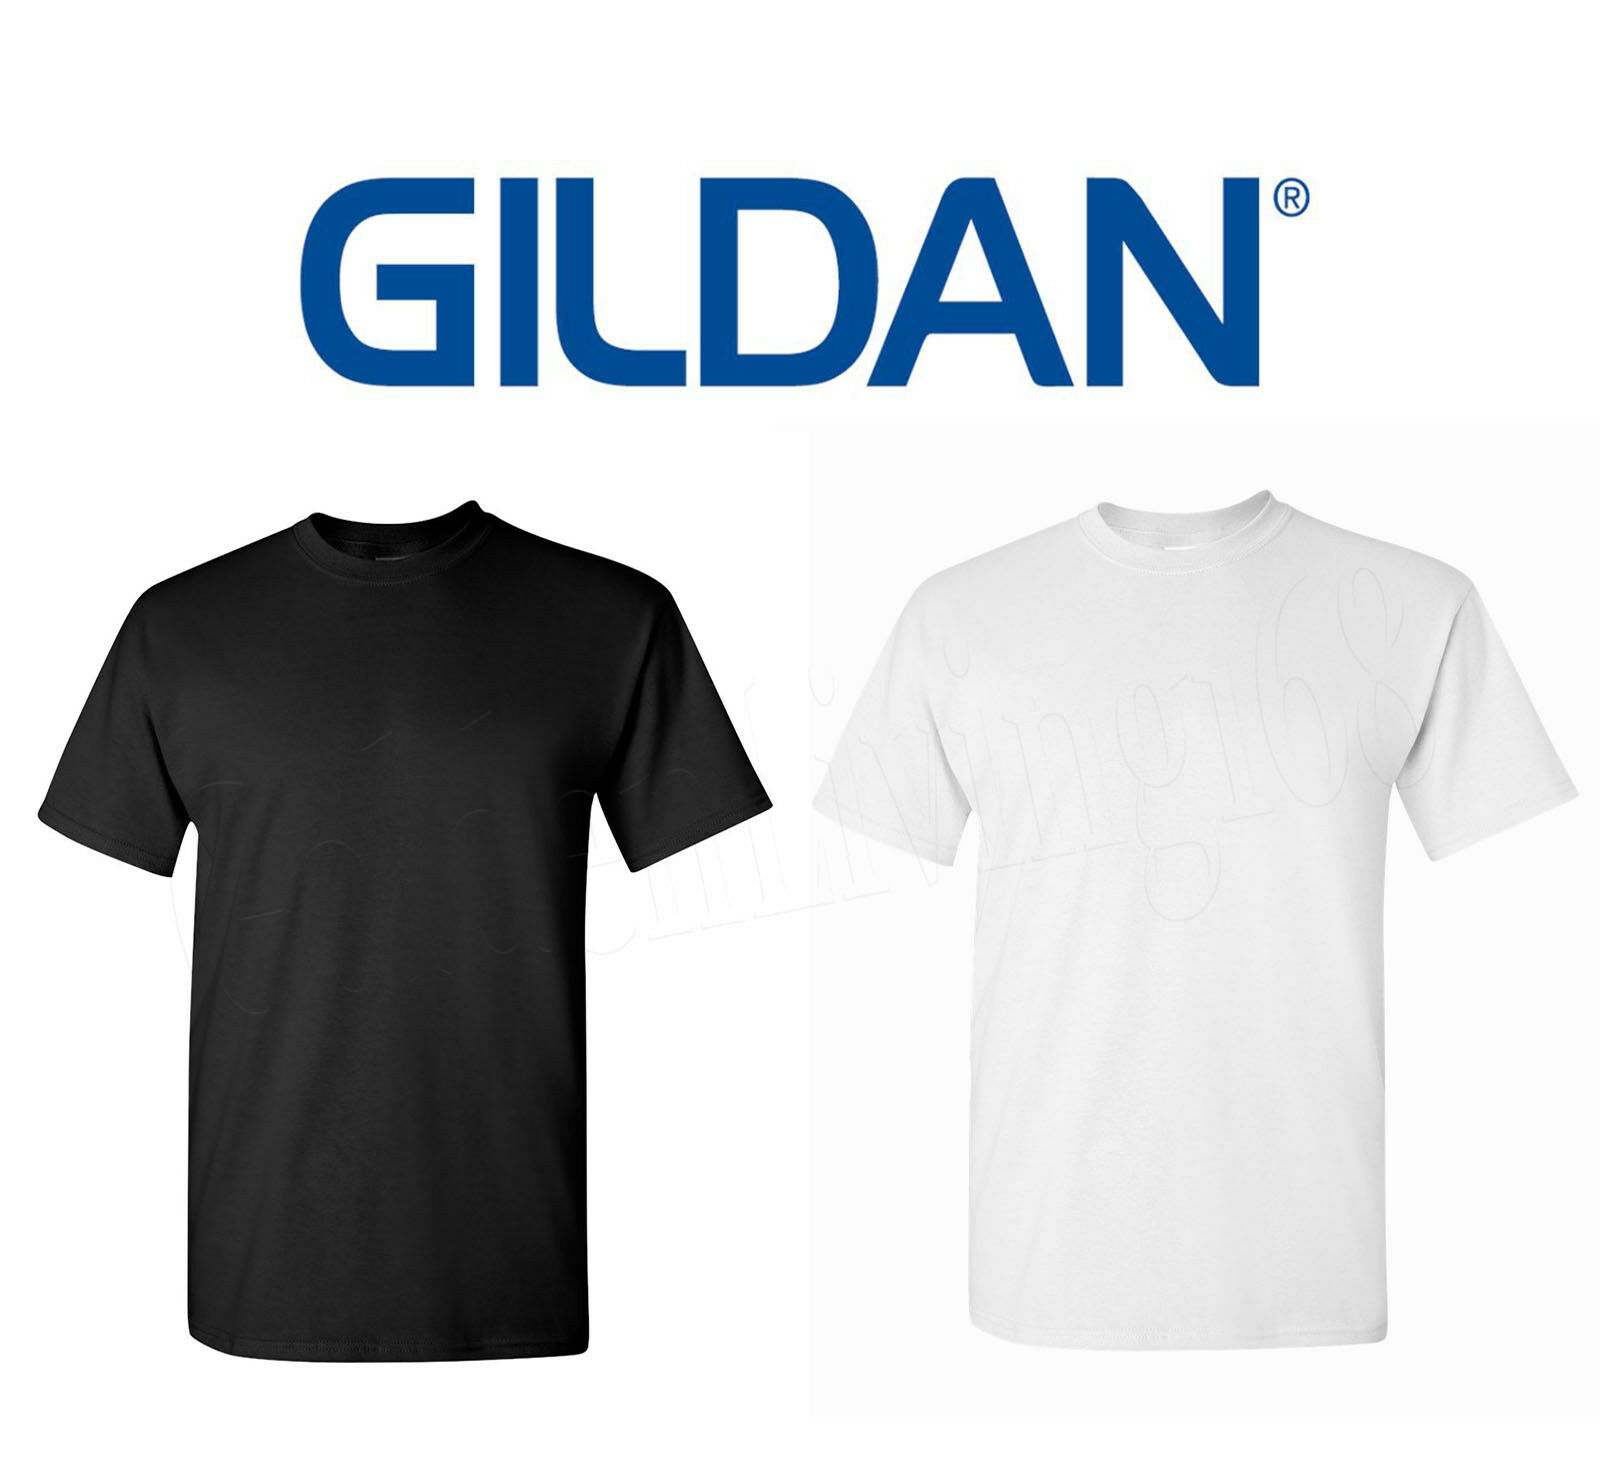 bulk t shirts gildan bulk t shirt suppliers